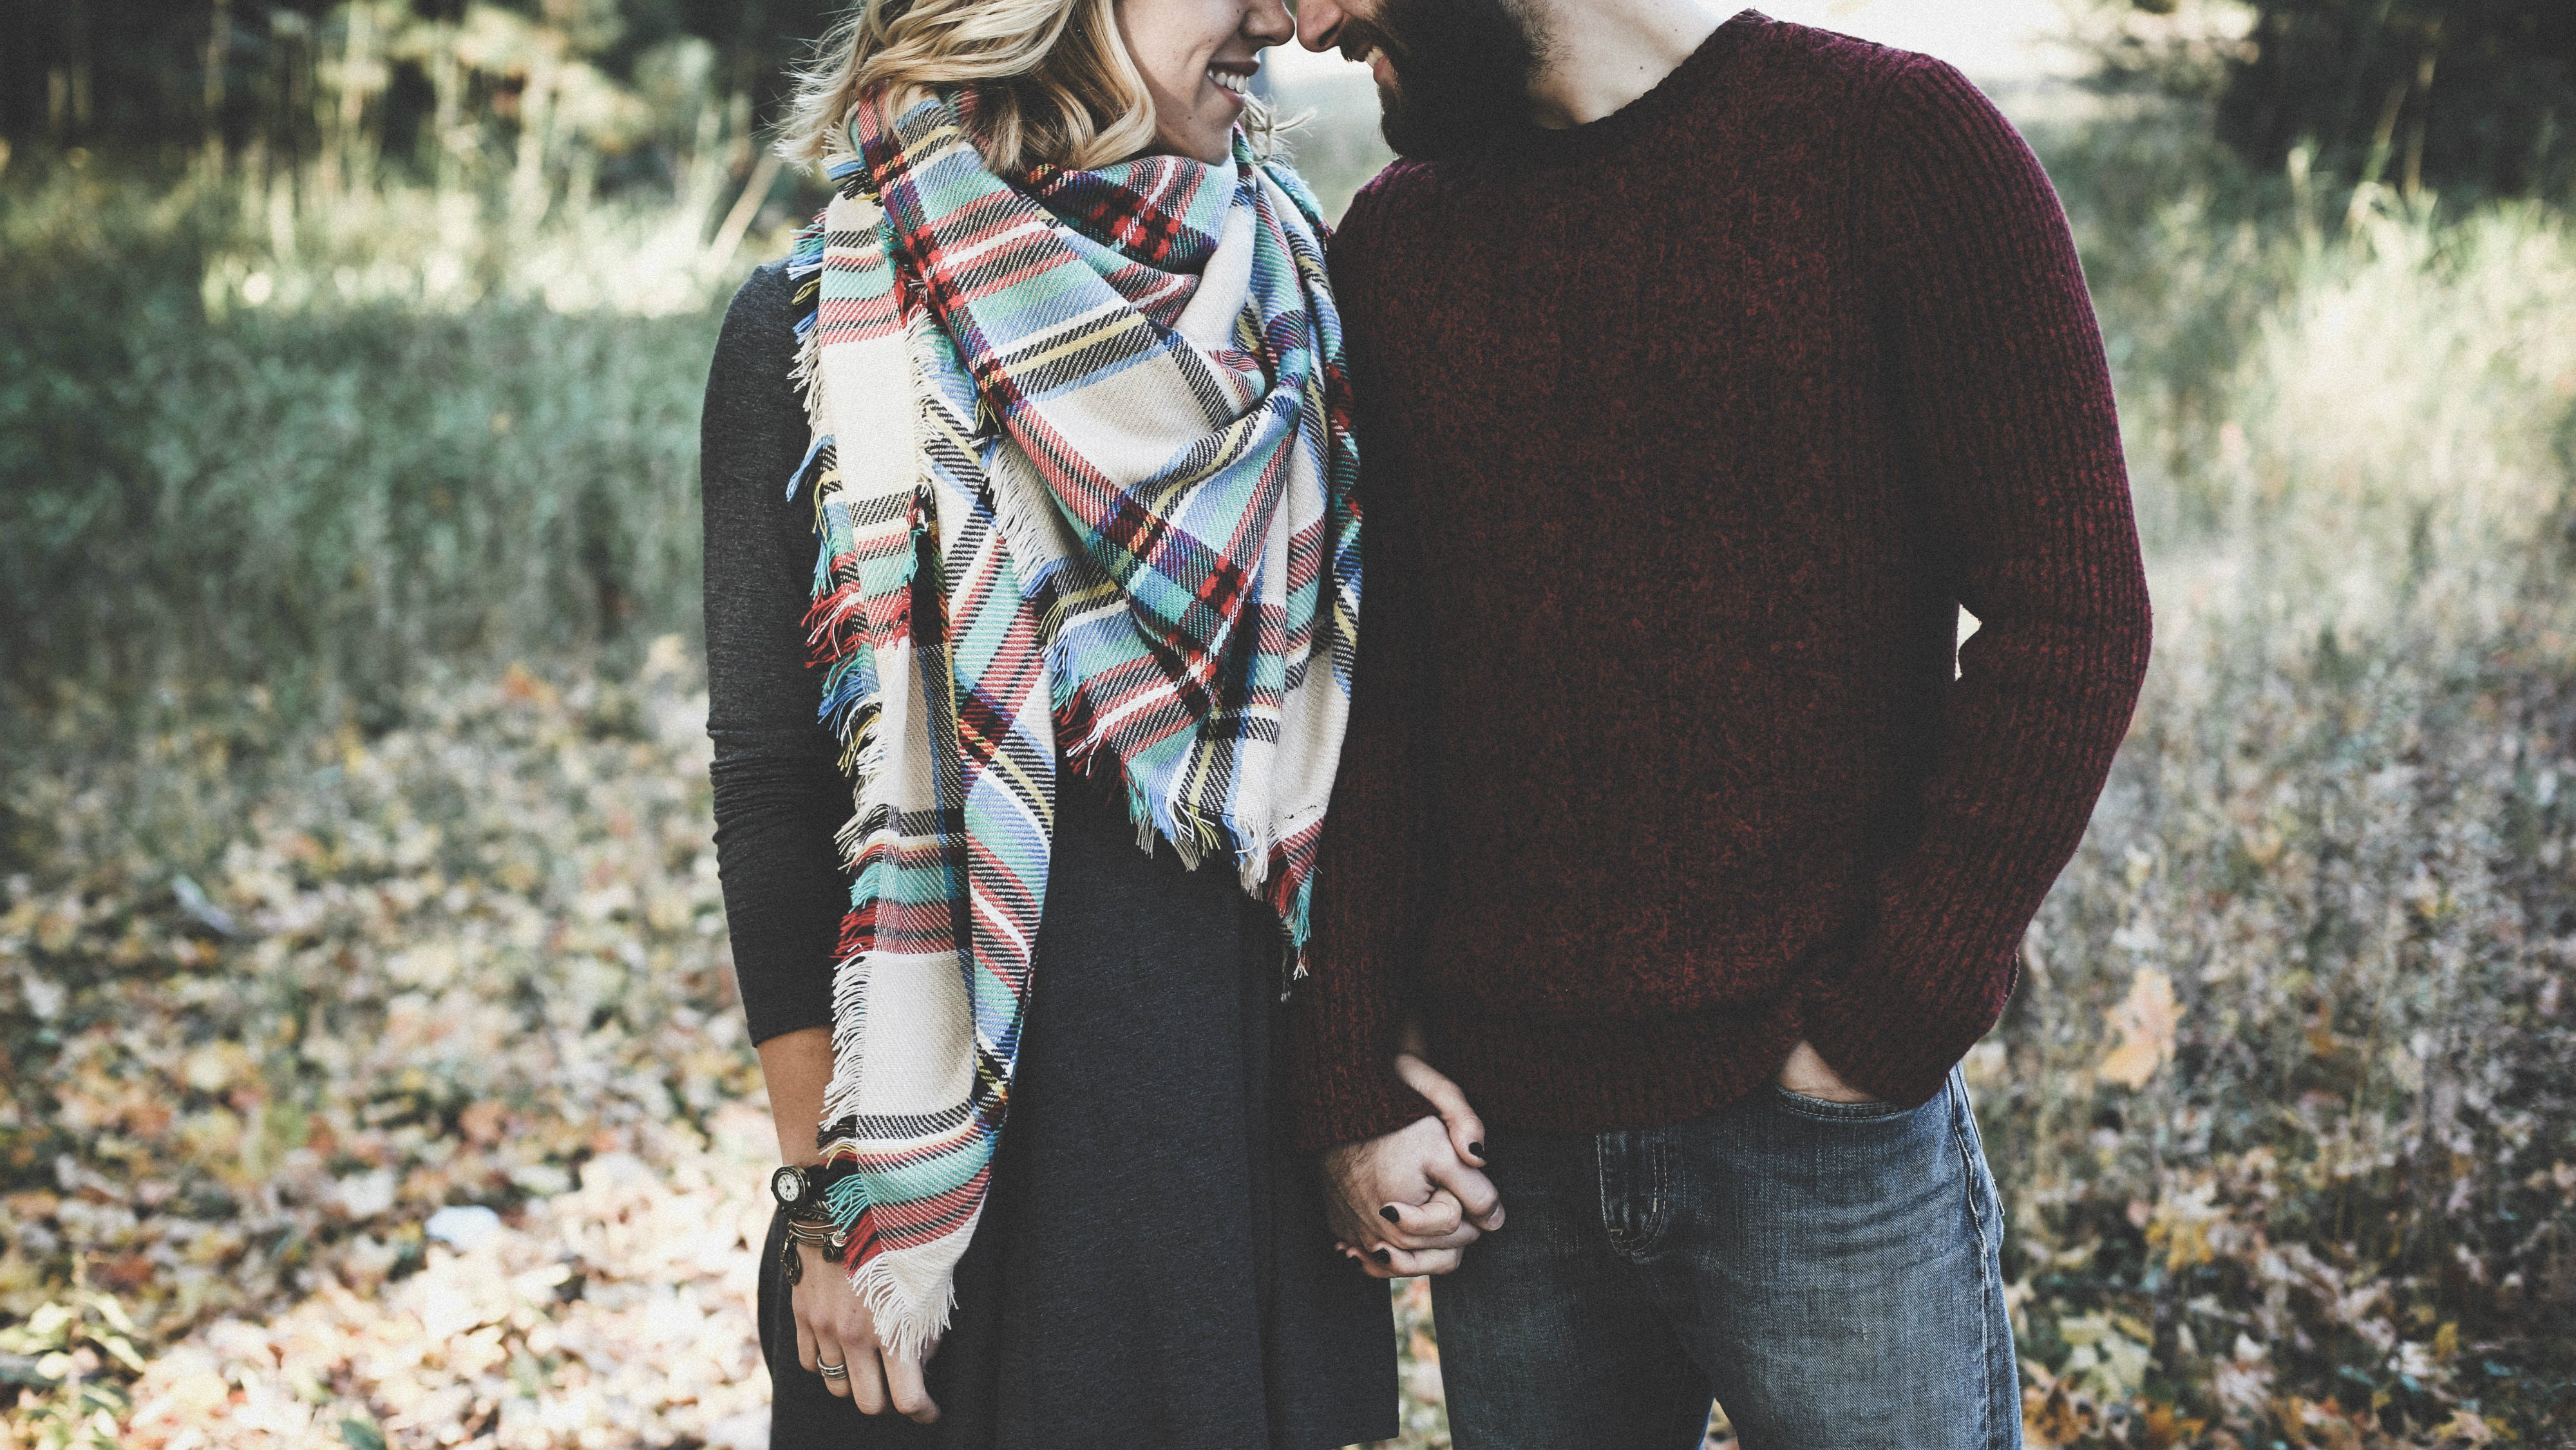 Dating christian marriage to leading